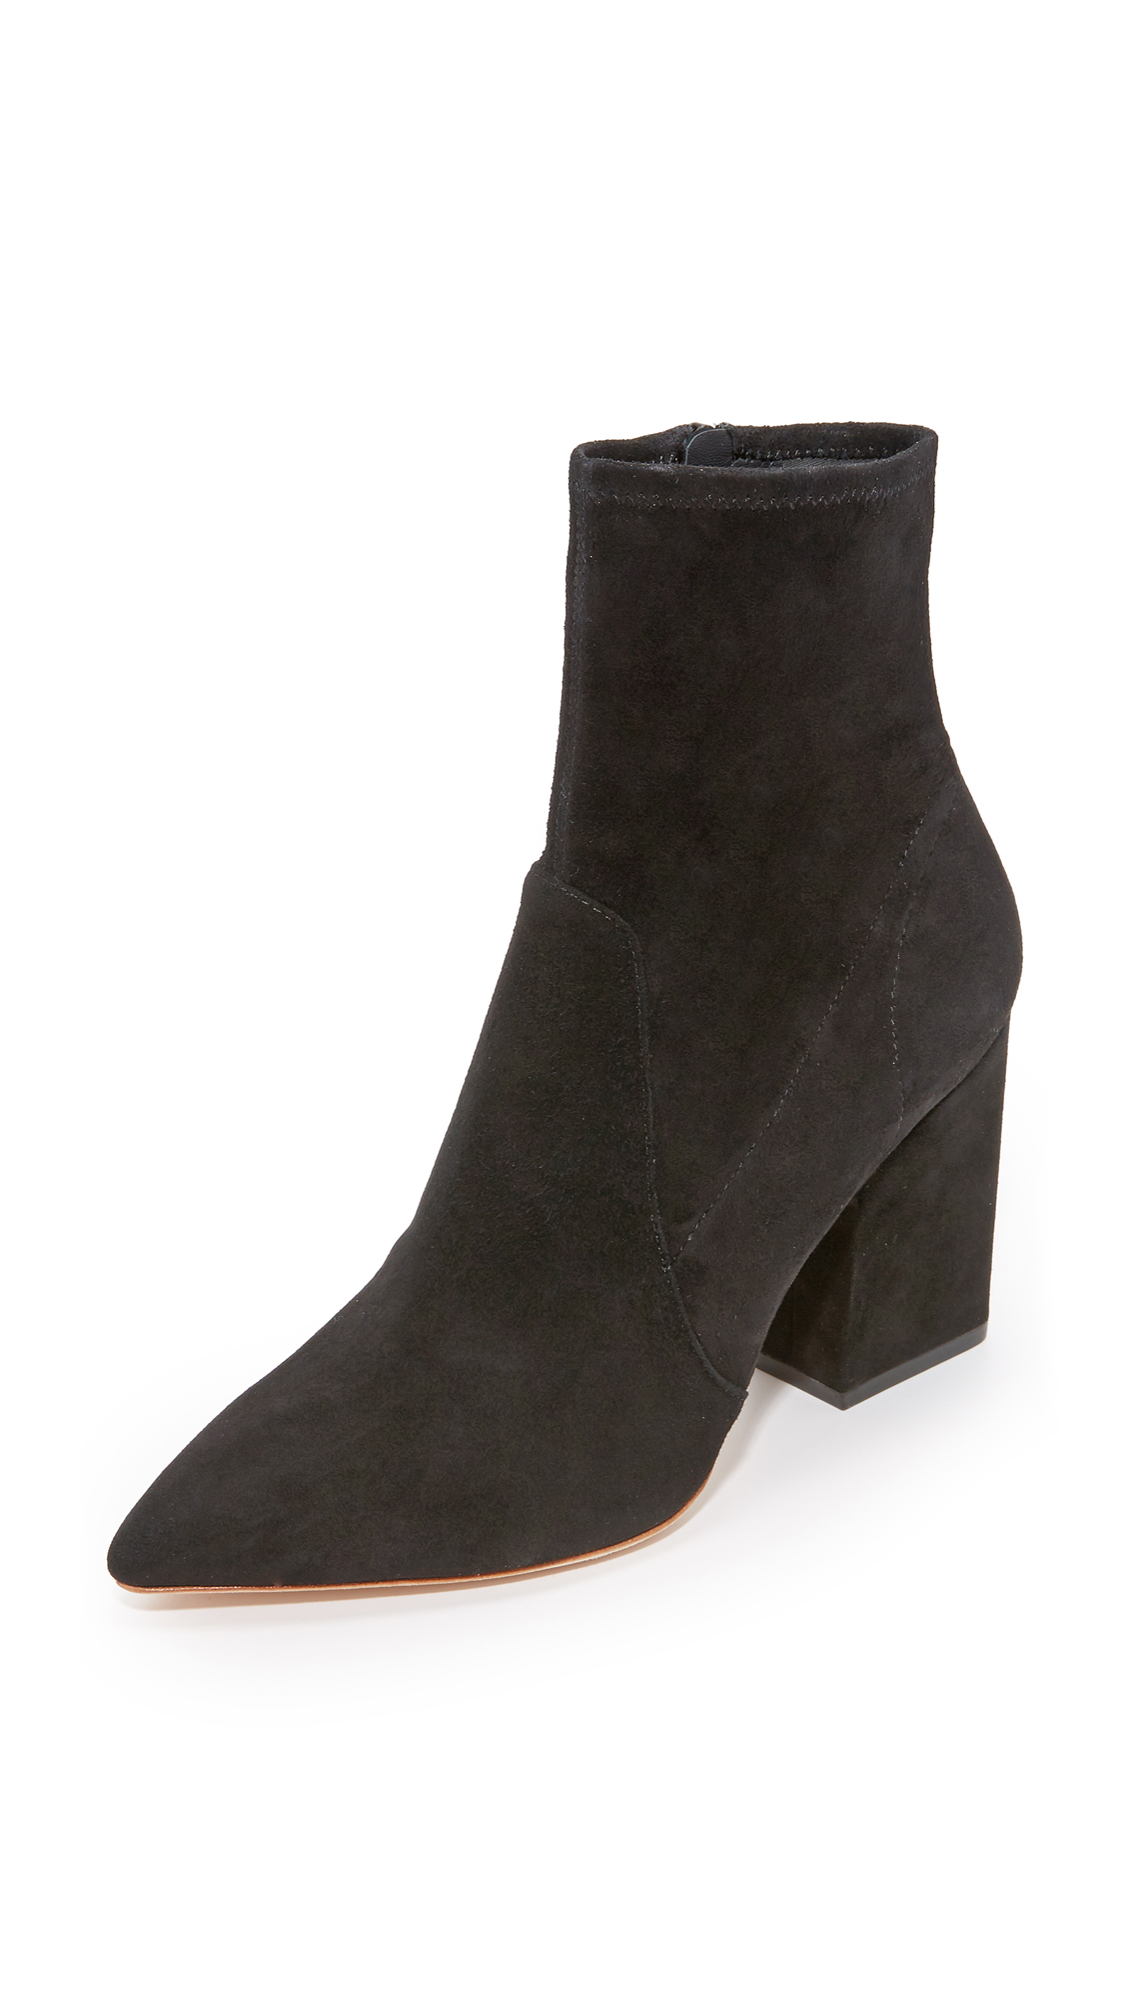 Pointed toe Loeffler Randall booties in luxe, stretch suede. Exposed side zip. Covered block heel with rubber patch. Leather sole. Leather: Cowhide. Imported, China. This item cannot be gift boxed. Measurements Heel: 3in / 75mm. Available sizes: 5,5.5,8,8.5,9,9.5,10,10.5,11